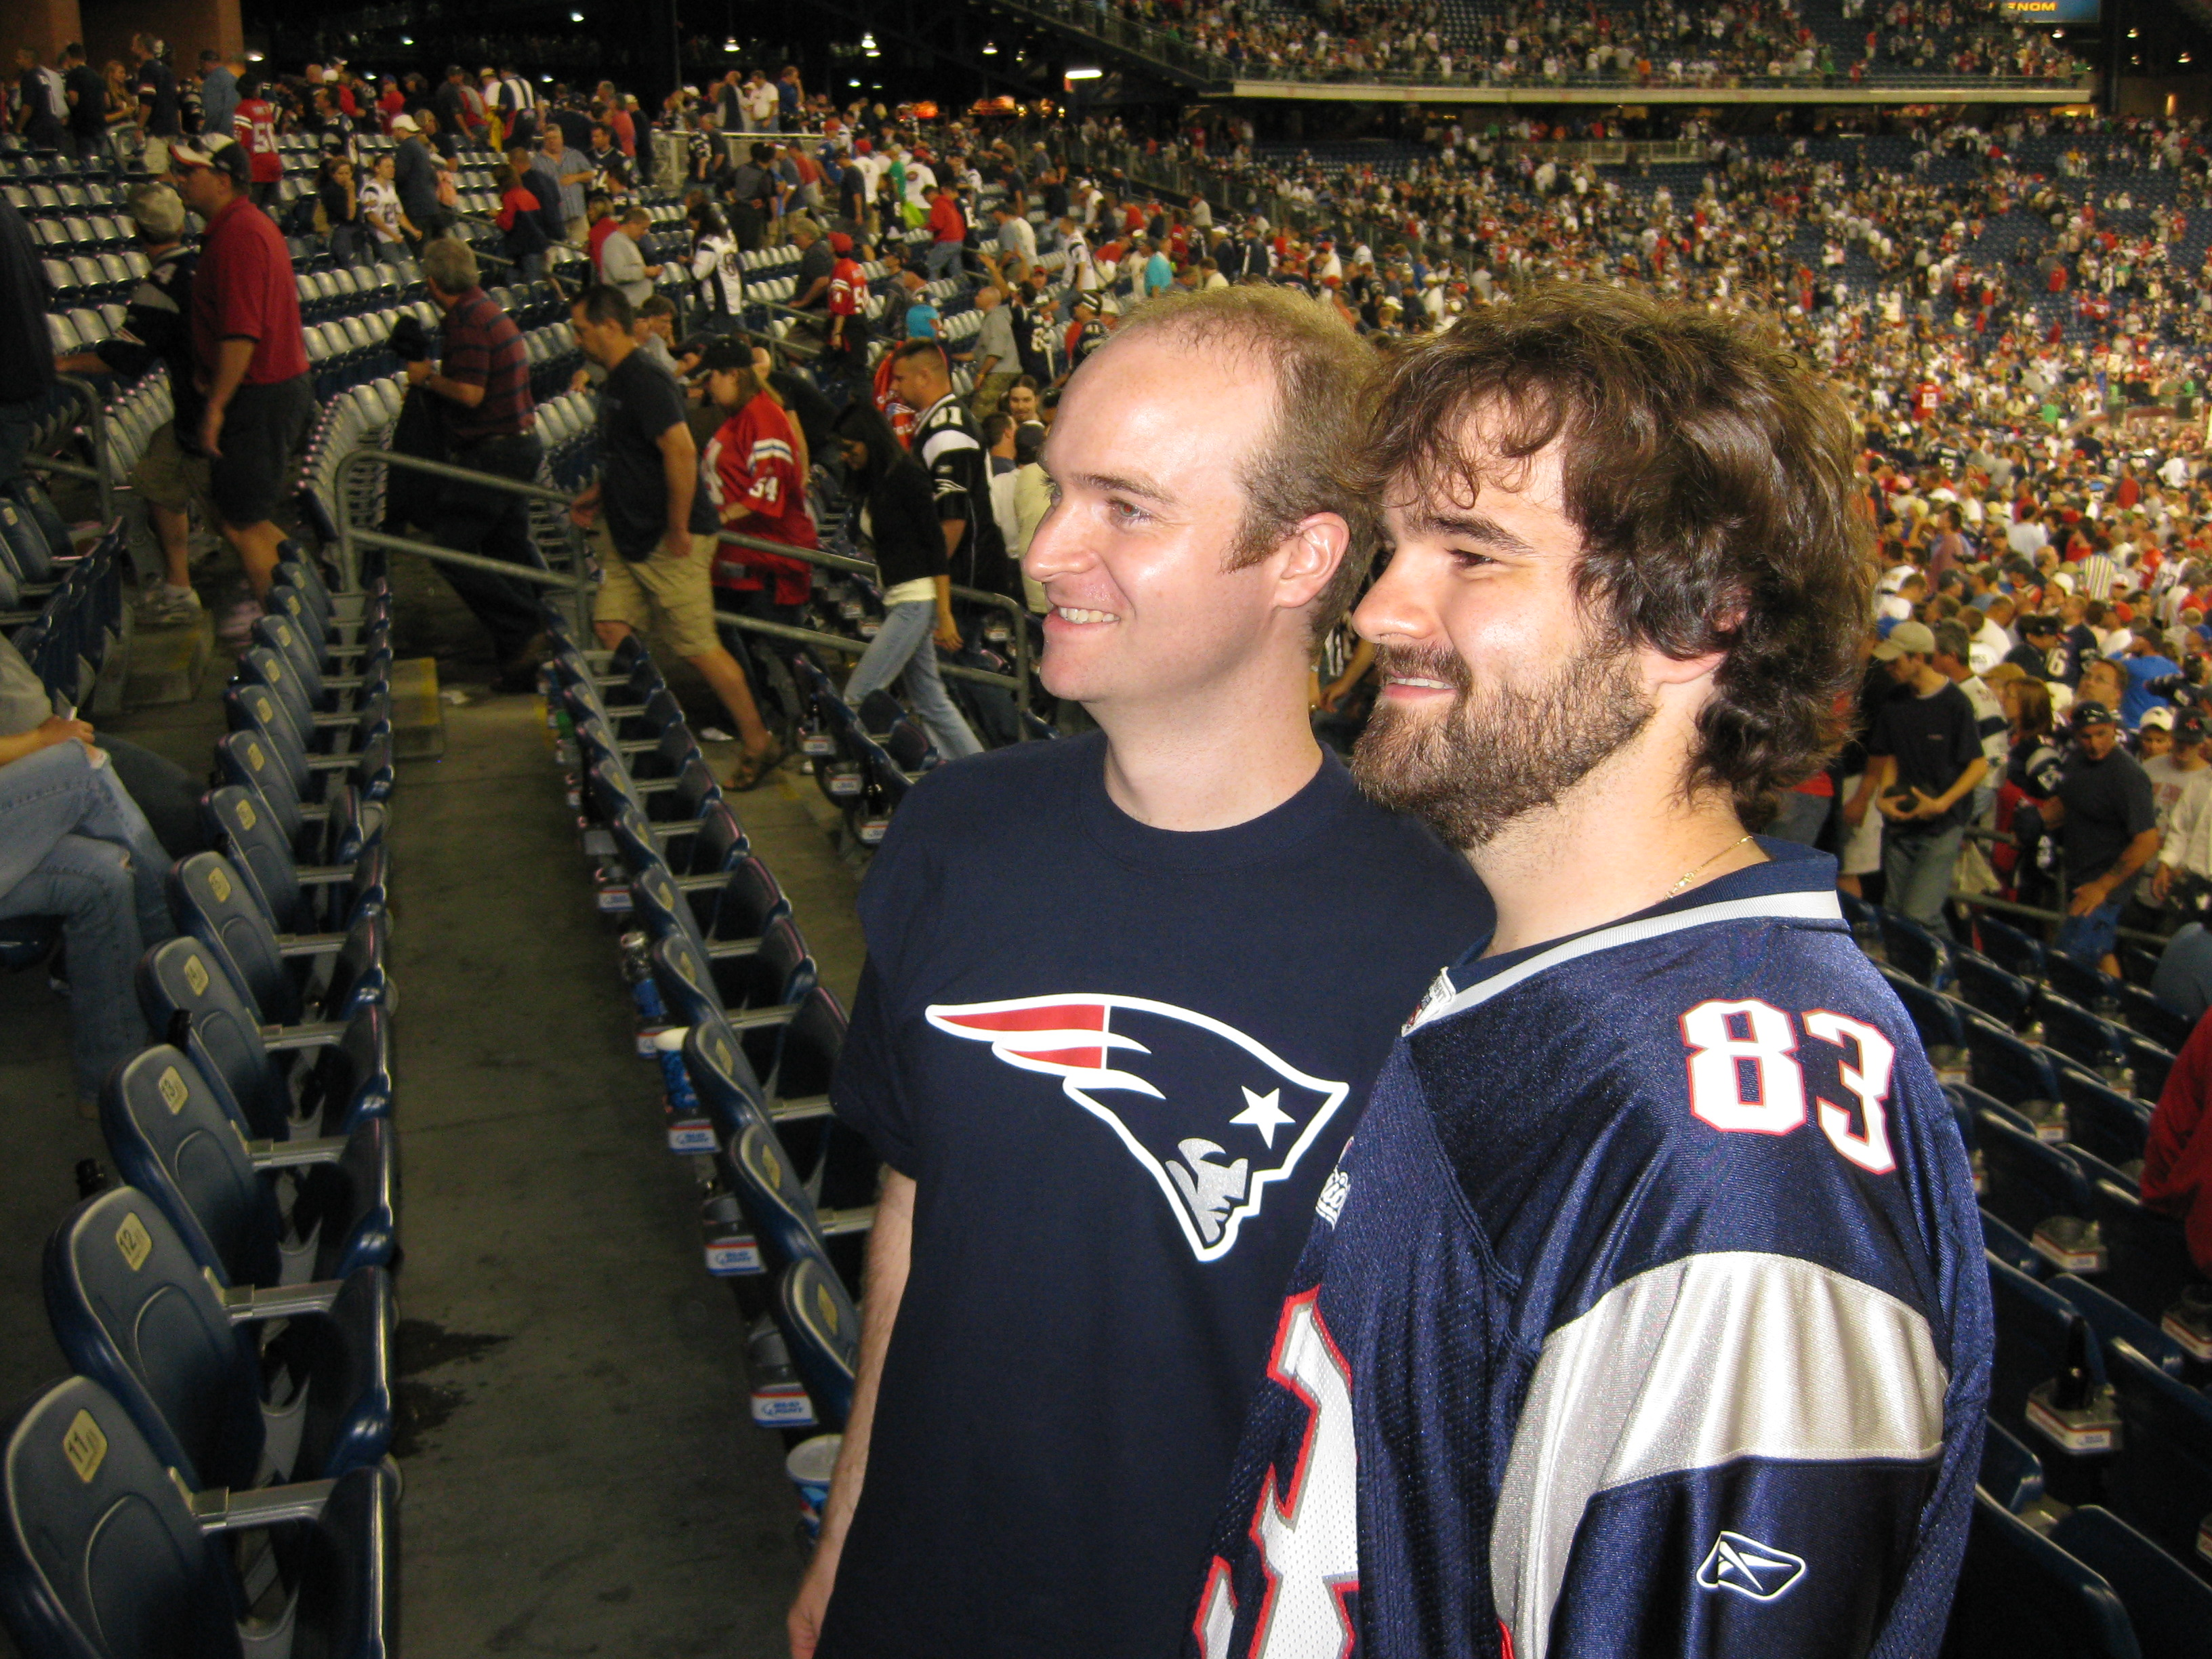 Brian and Logan at the Patriots vs. Bills game